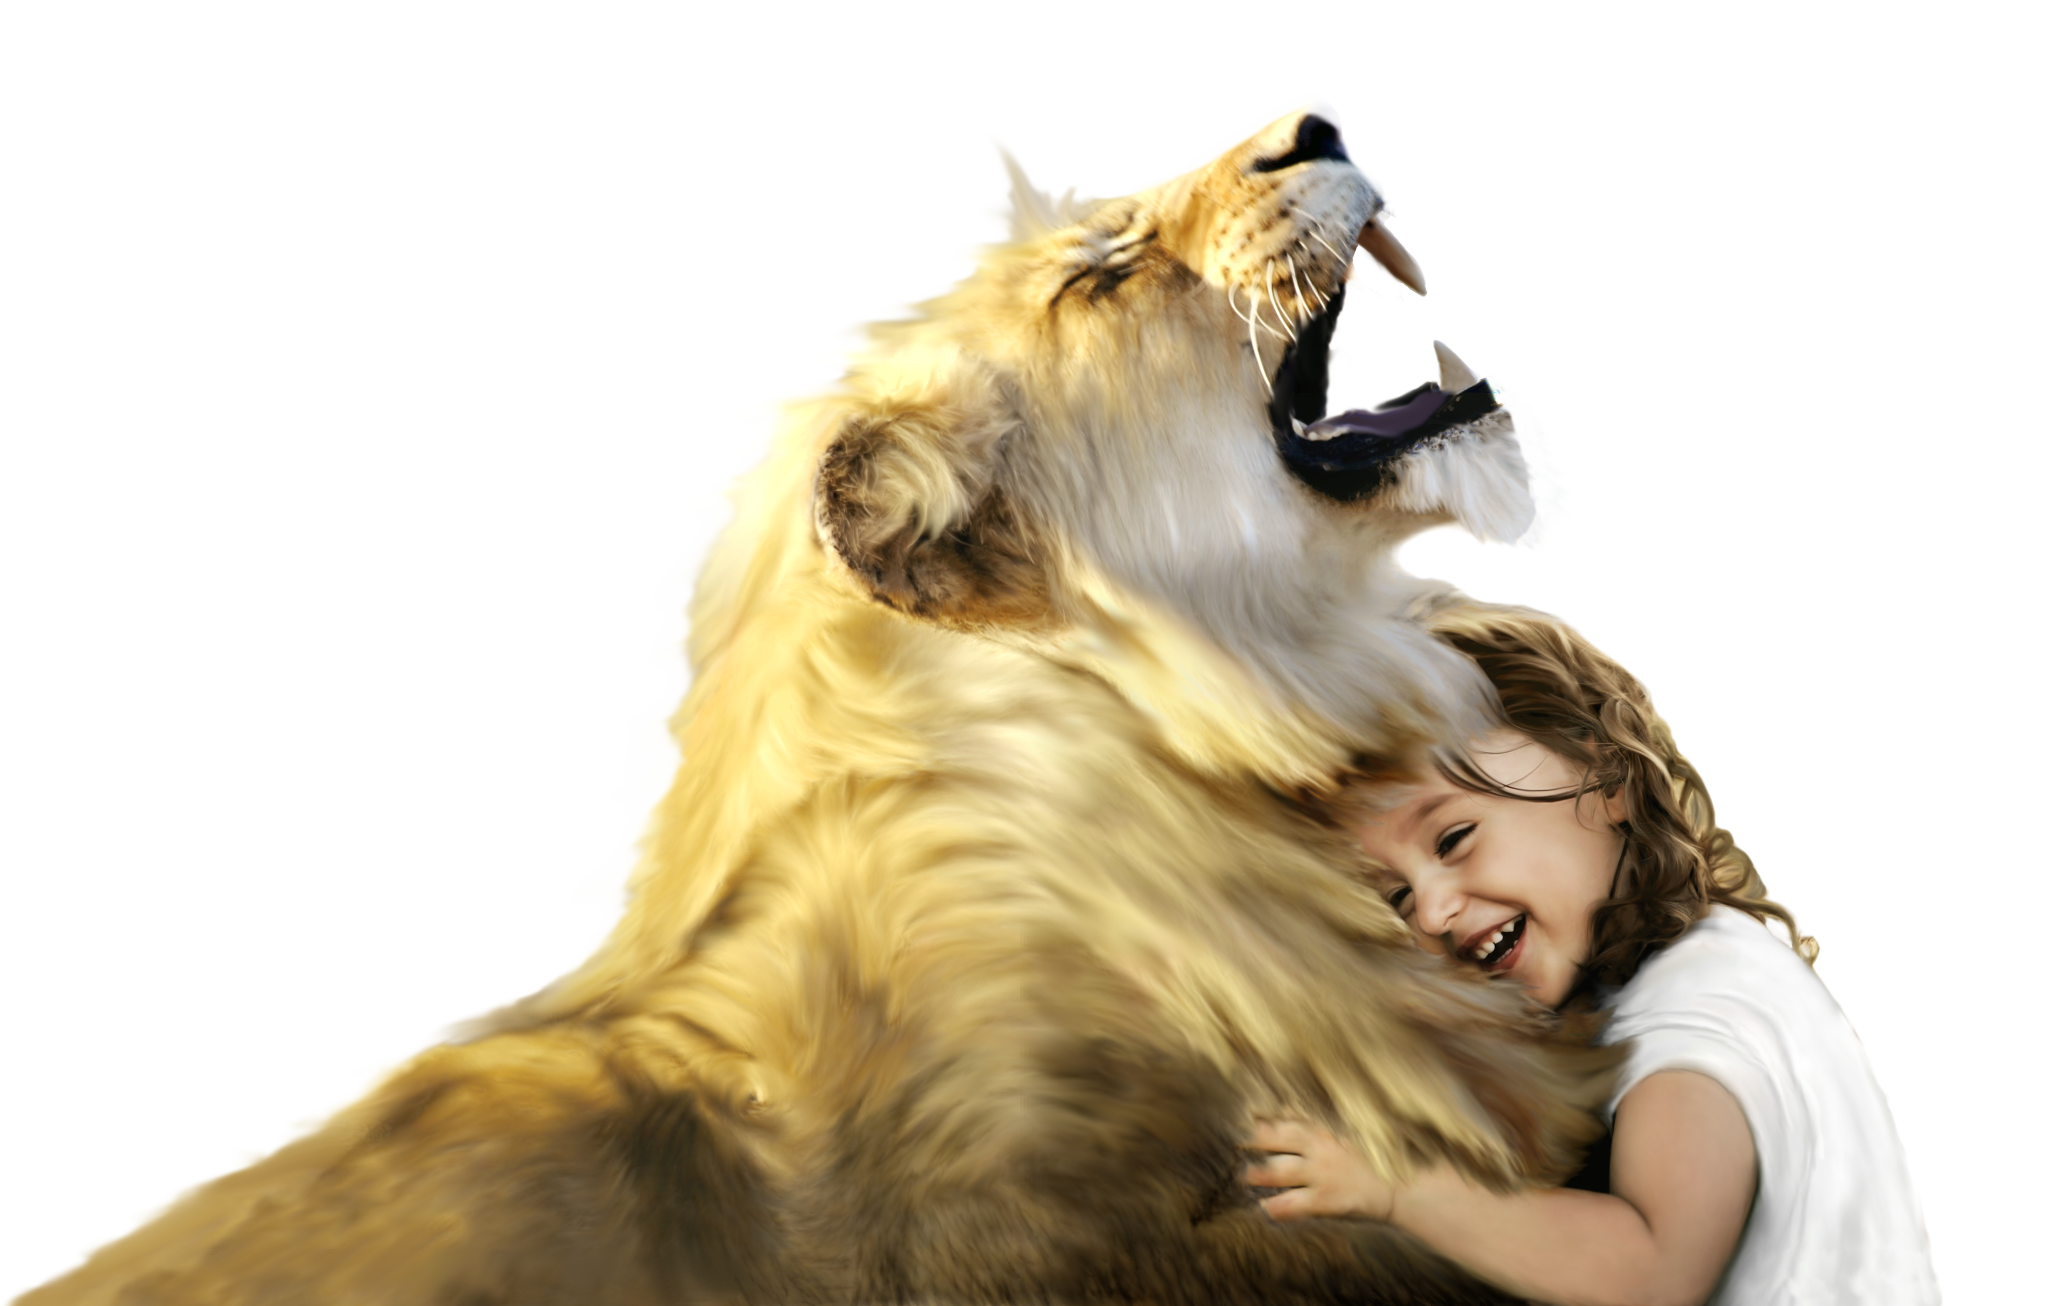 Lion and Girl Laughing